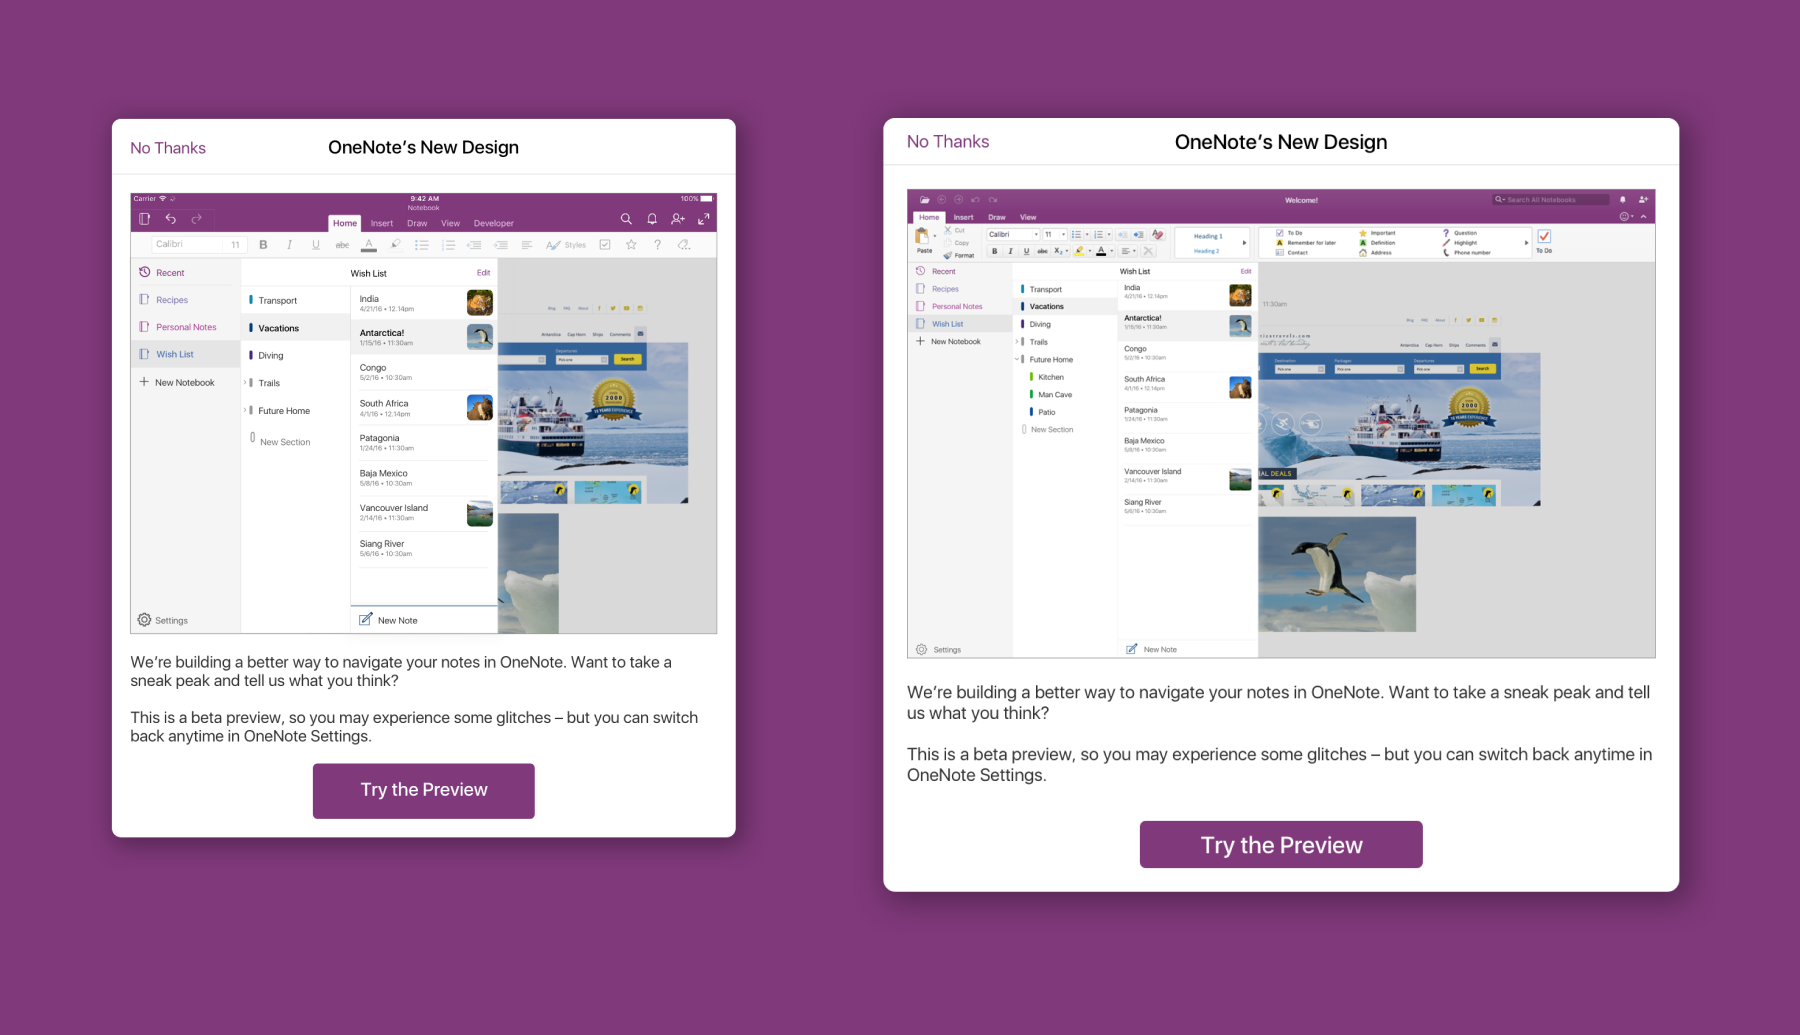 Opt-in modals displaying a new beta design for OneNote